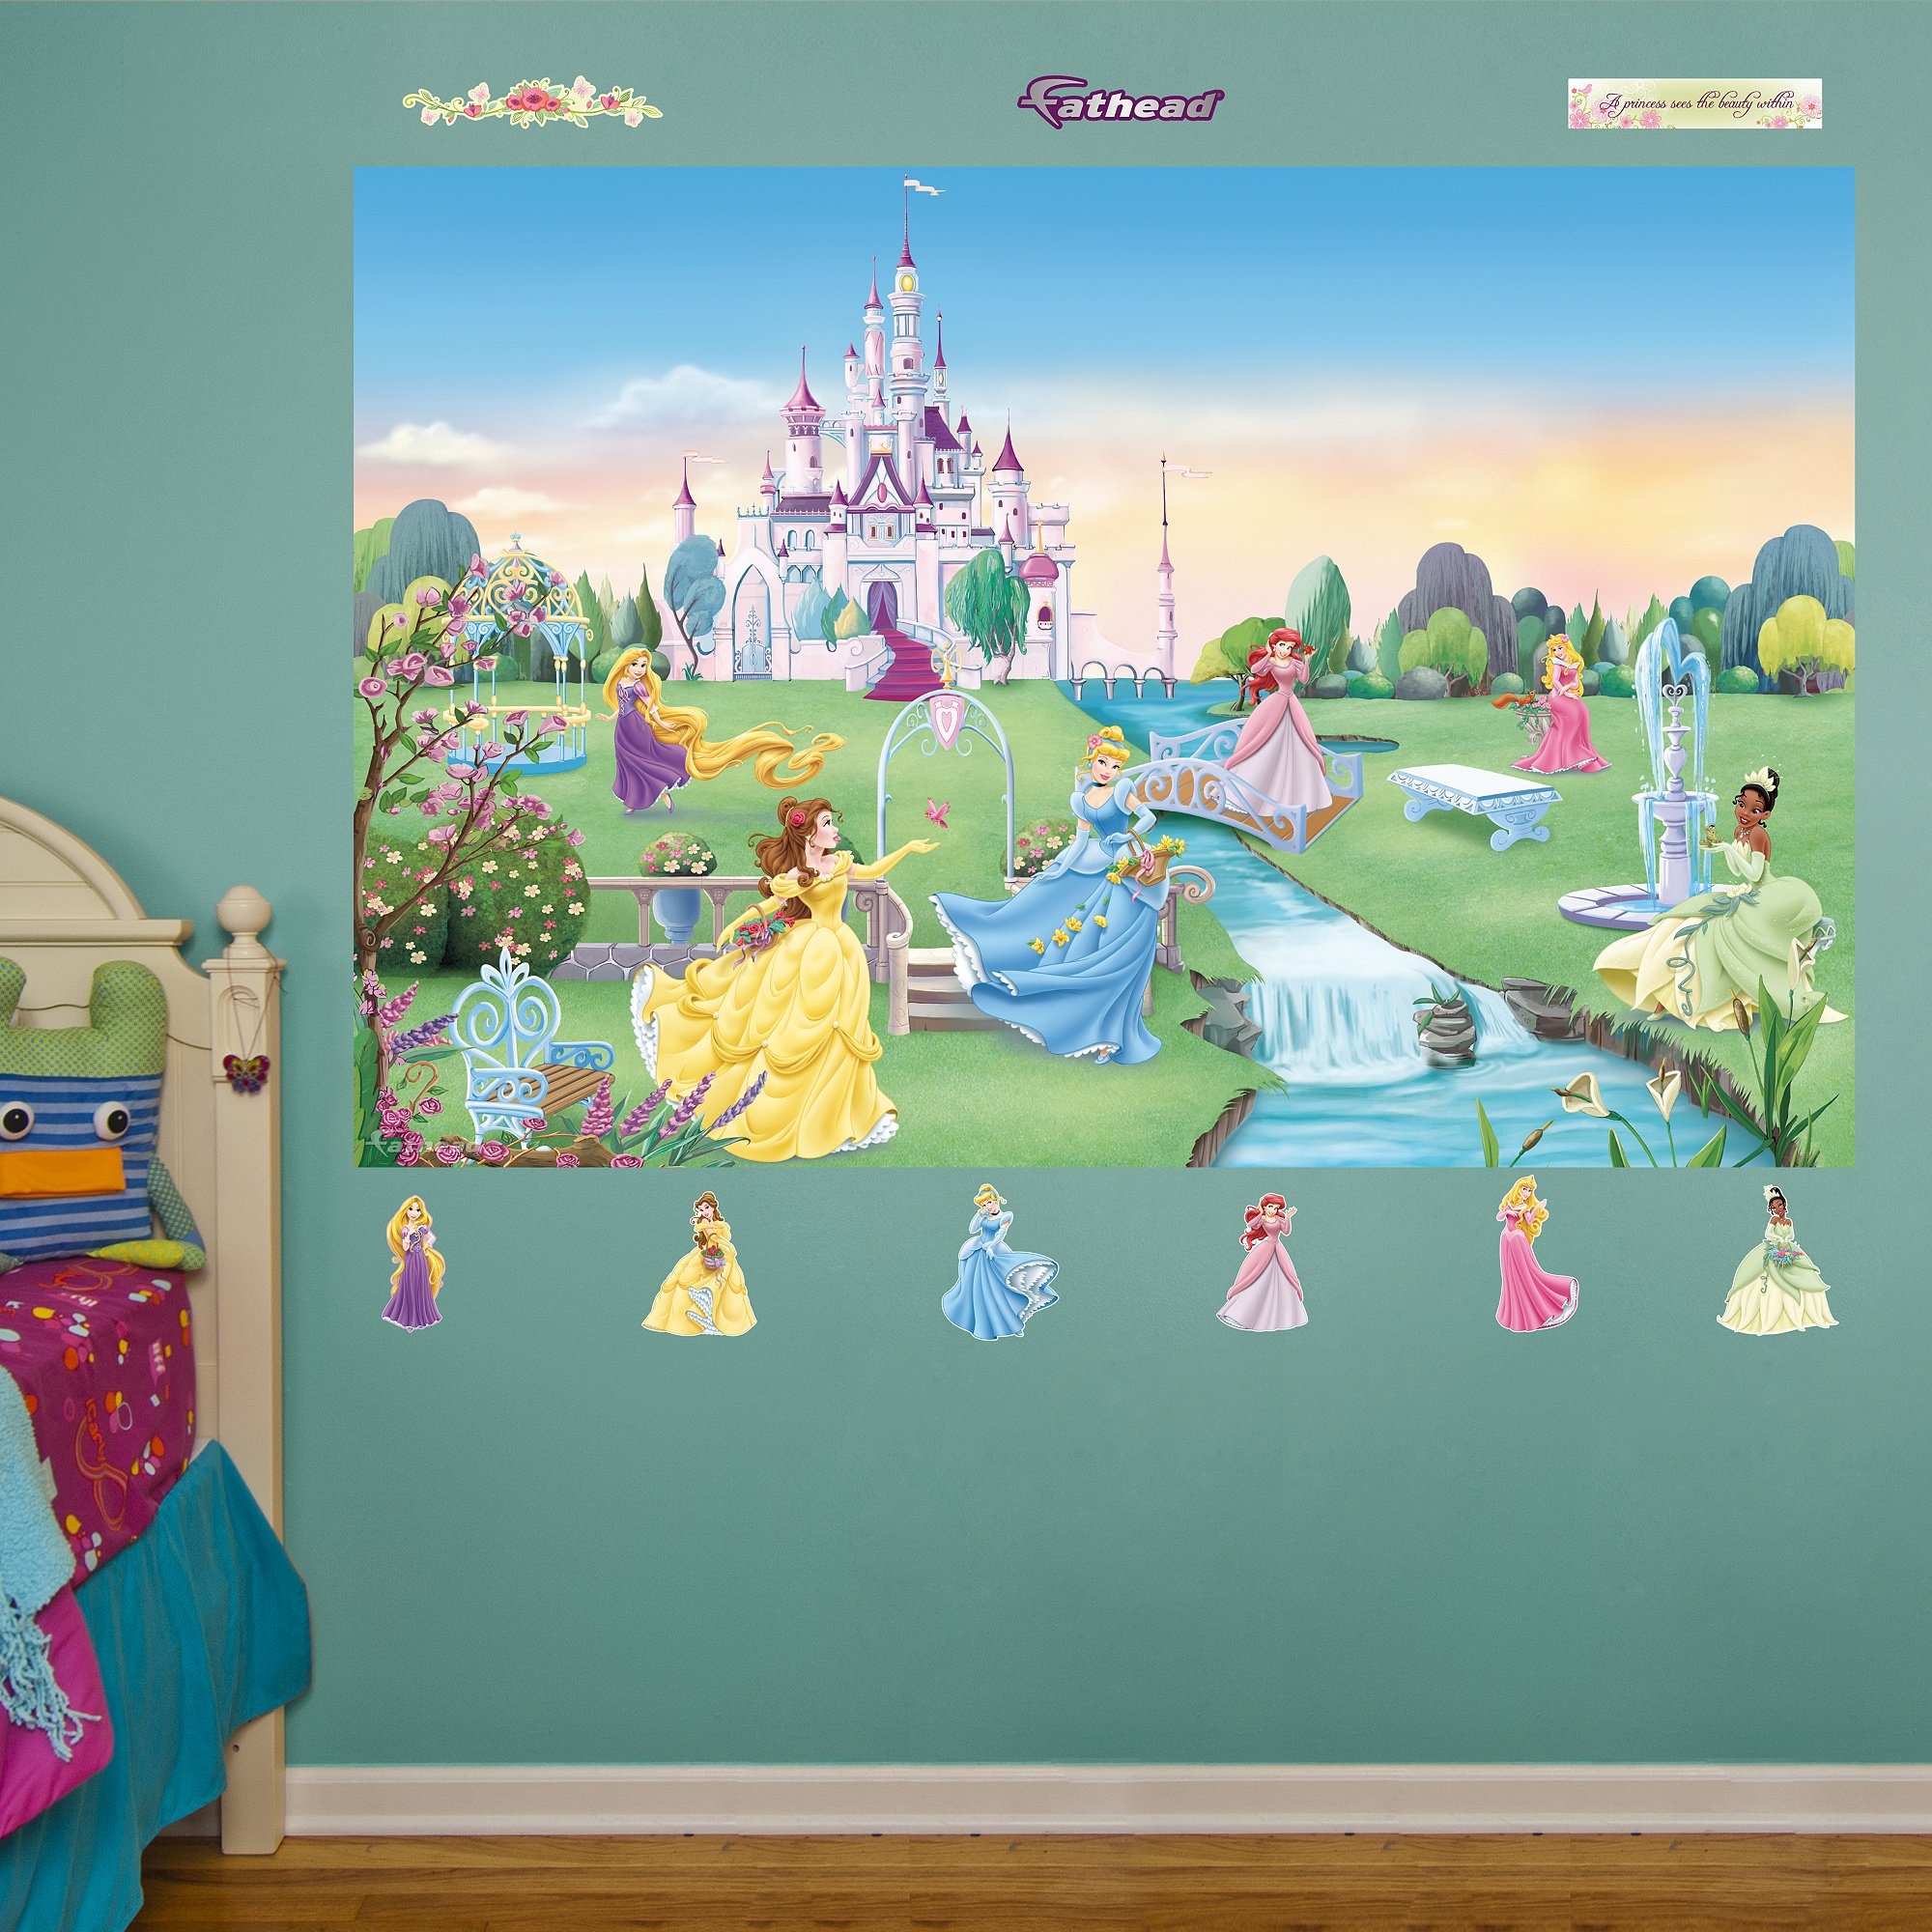 FATHEAD Disney Princess: Mural-Huge Officially Licensed Removable Graphic Wall Decal by FATHEAD